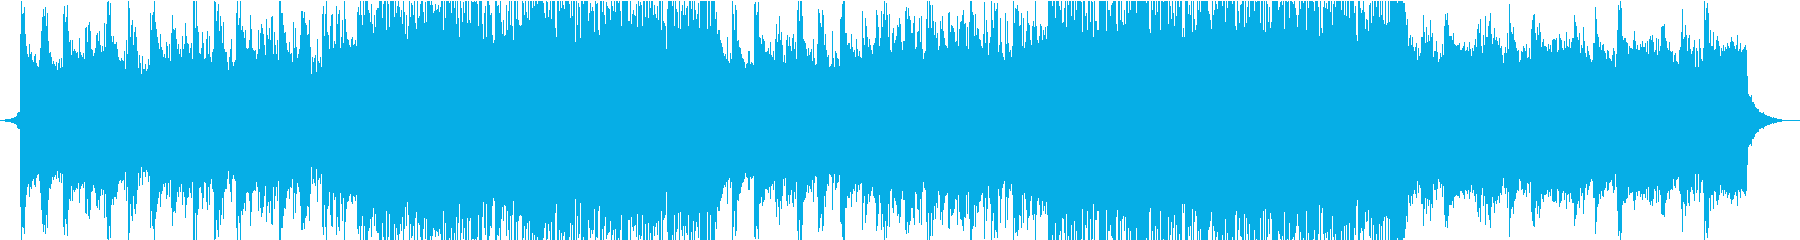 Piano rock that looks like an overseas introduction video's reproduced waveform